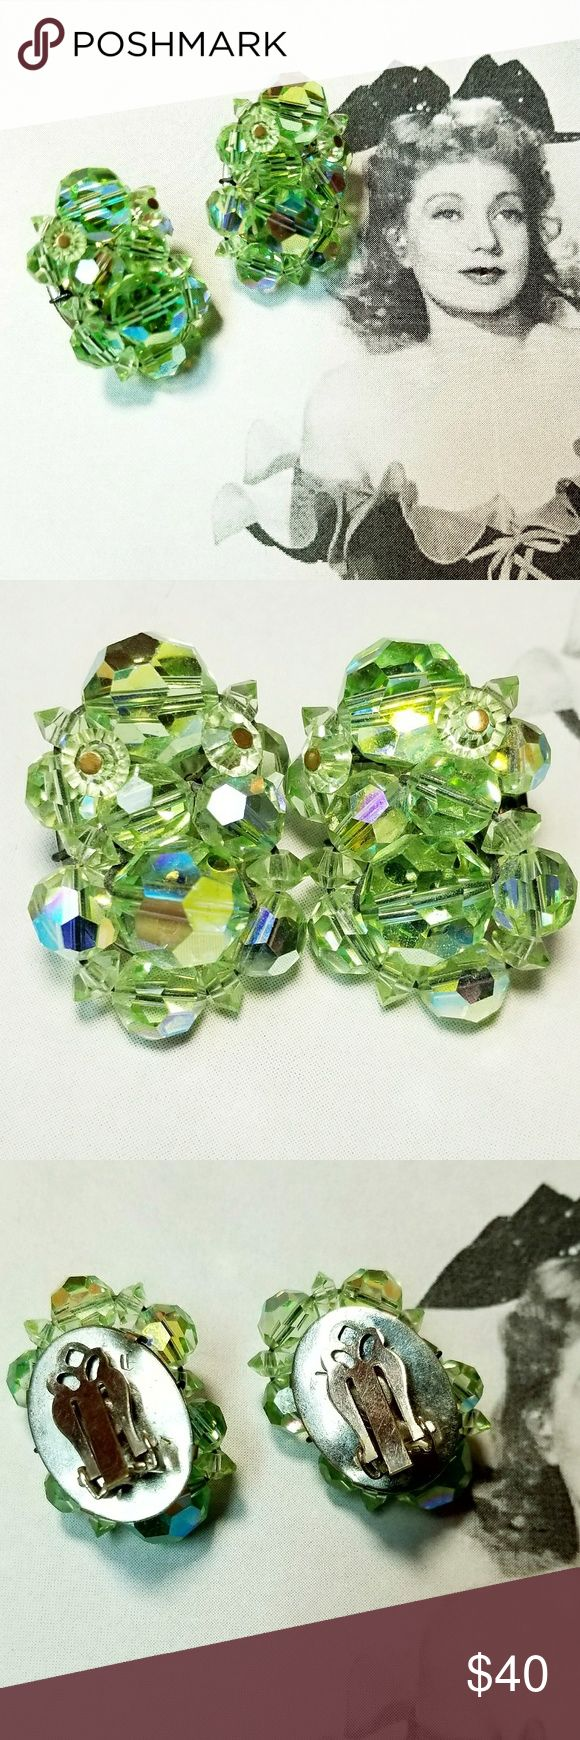 """Vintage Peridot Aurora Borealis crystal earrings Vintage Peridot green Aurora Borealis crystal clip earrings. Measures just over 1"""" tall and just over .5"""" wide. Clips are silver tone and sturdy and in good working order. Excellent vintage condition reasonable offers welcome and accepted. Looks fab with the other peridot AB jewelry listed. Add to a bundle and I'll offer you a great deal ❤ Vintage Jewelry Earrings"""